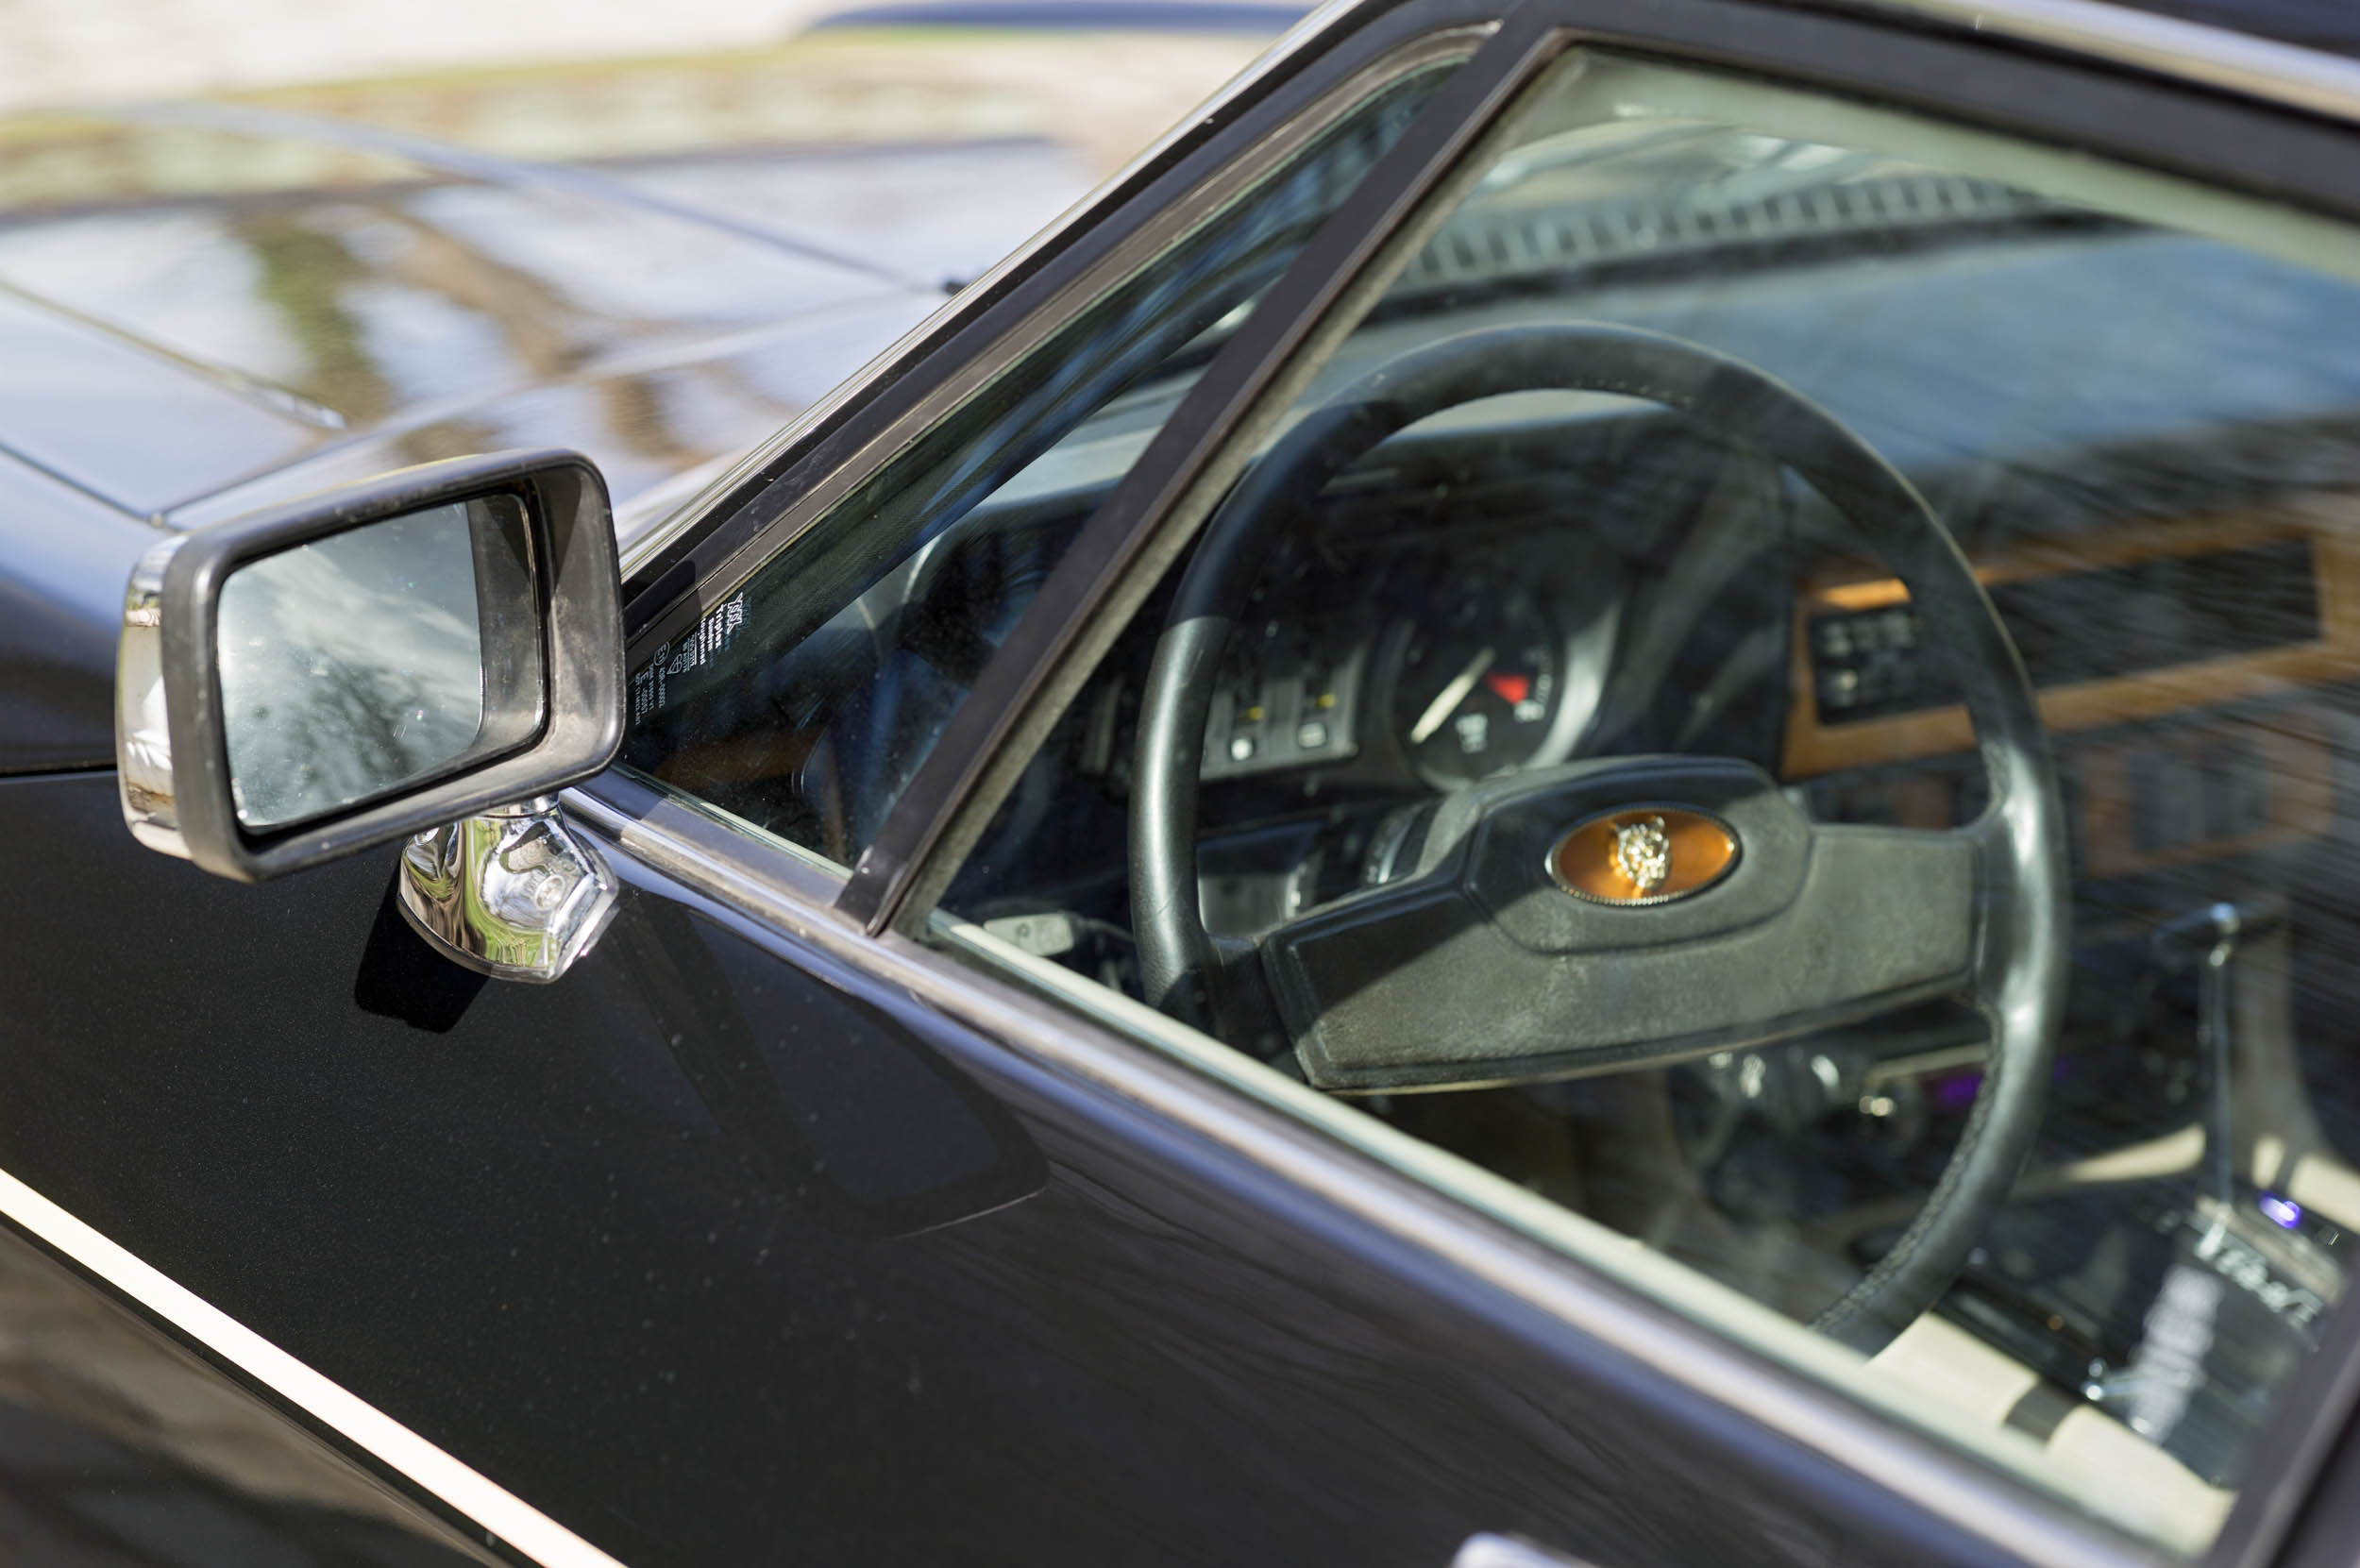 1984 Jaguar XJ-S V12 side mirror